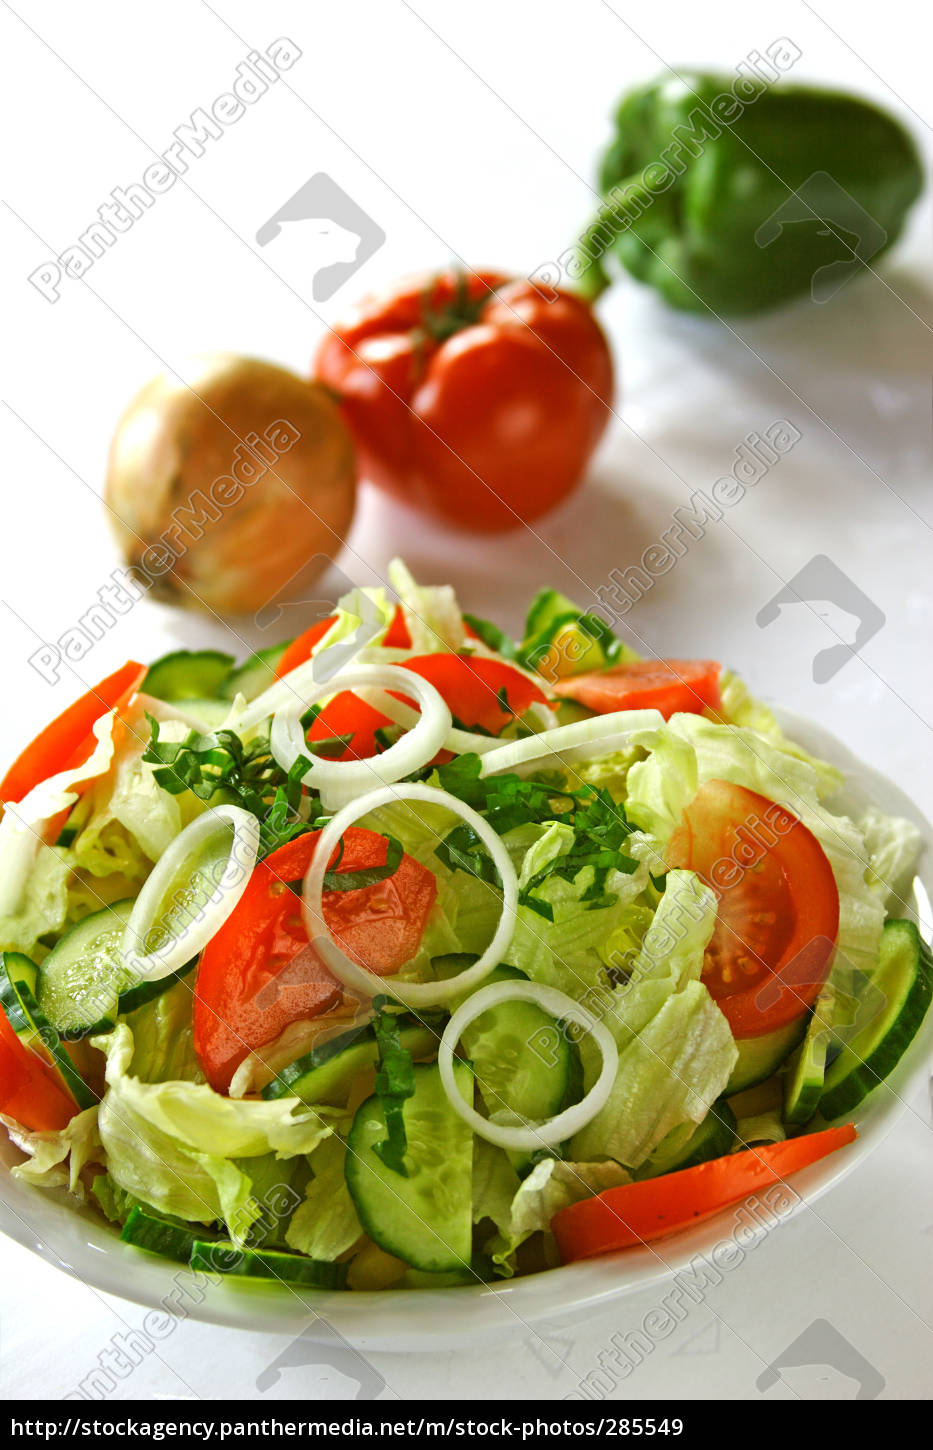 mixed, salad - 285549